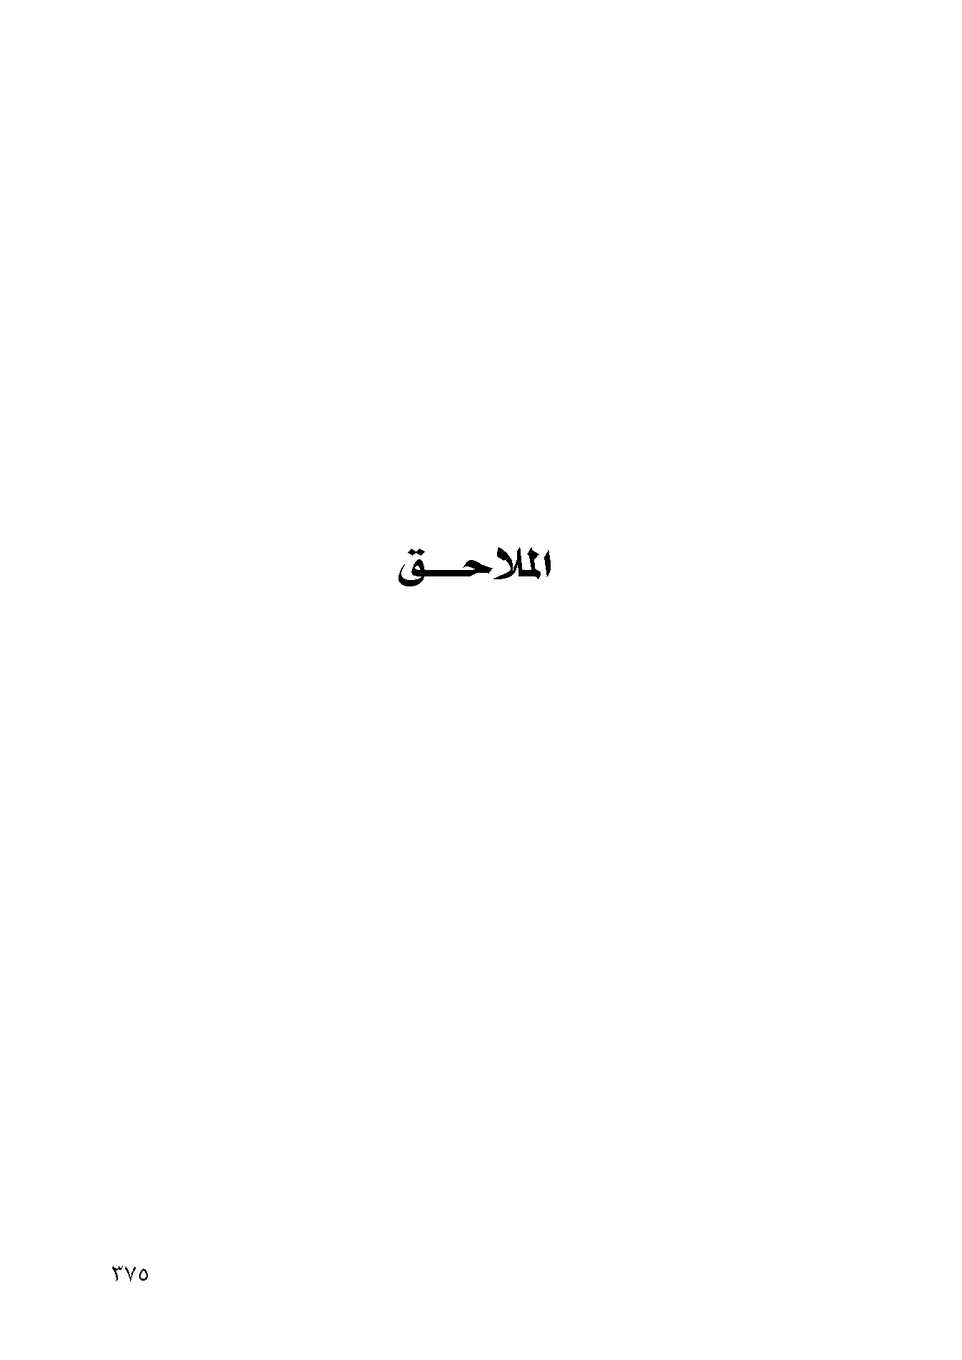 Page 383